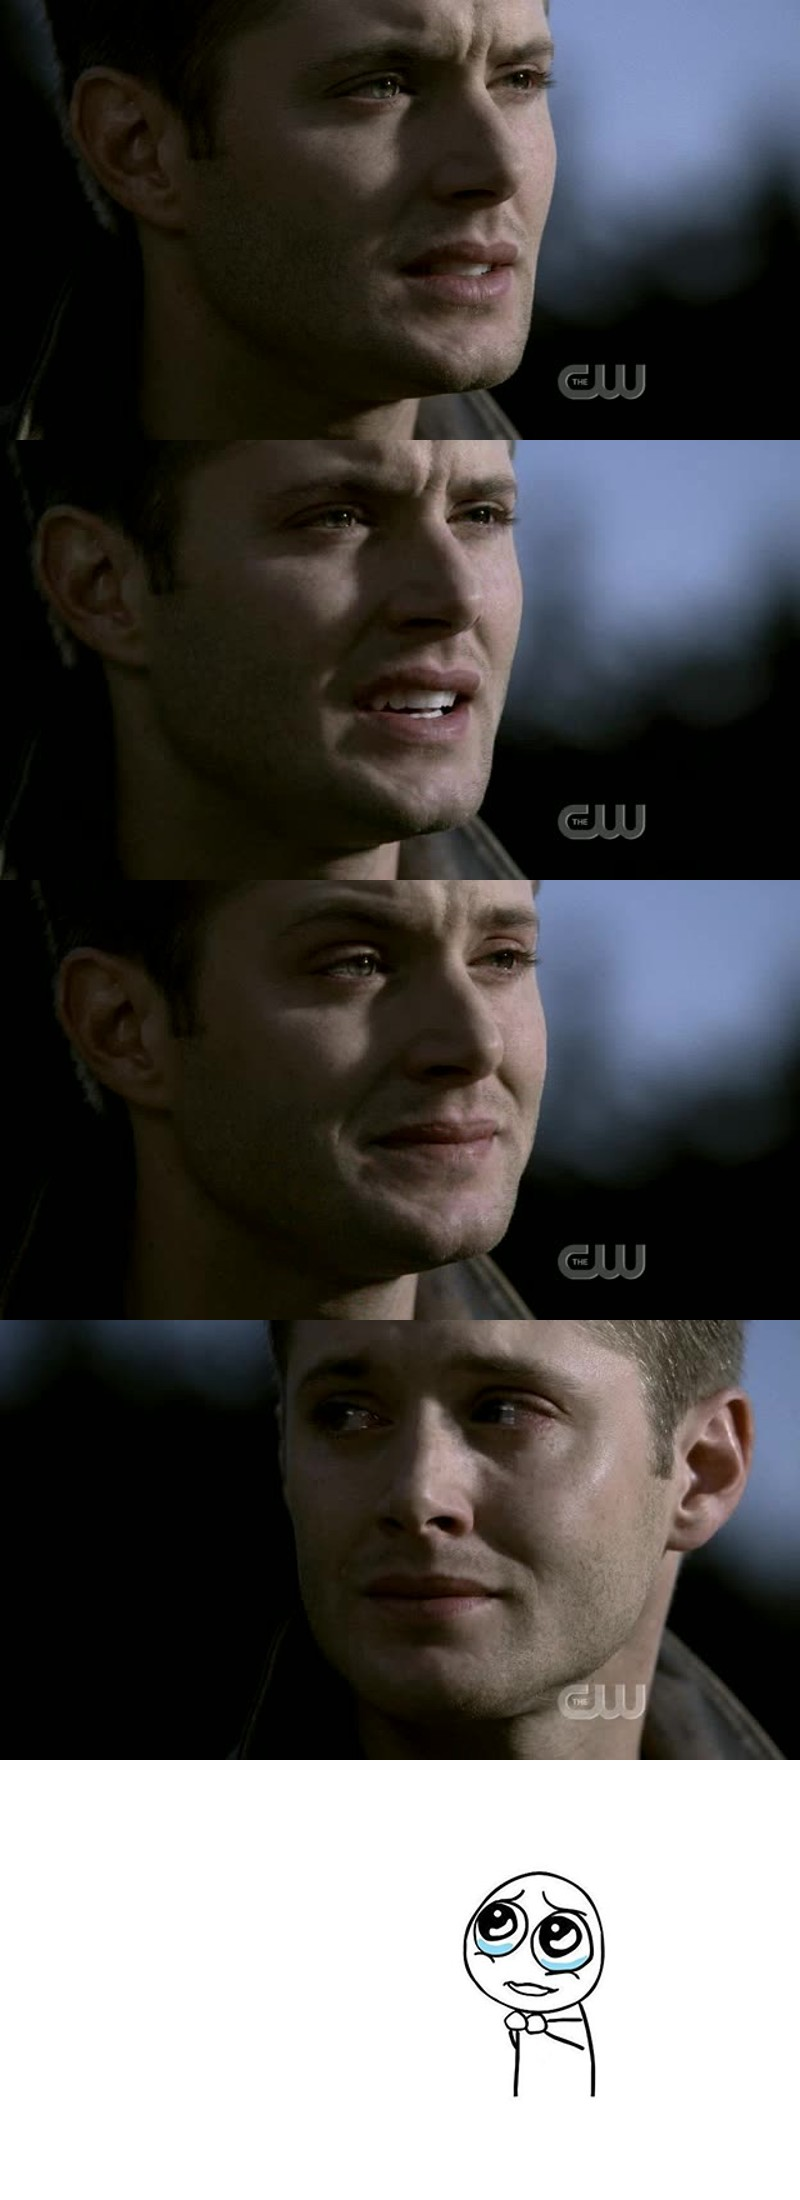 Jensen is an incredible actor, the way he manages to share those emotions is amazing. Plus he's so hot 🙌